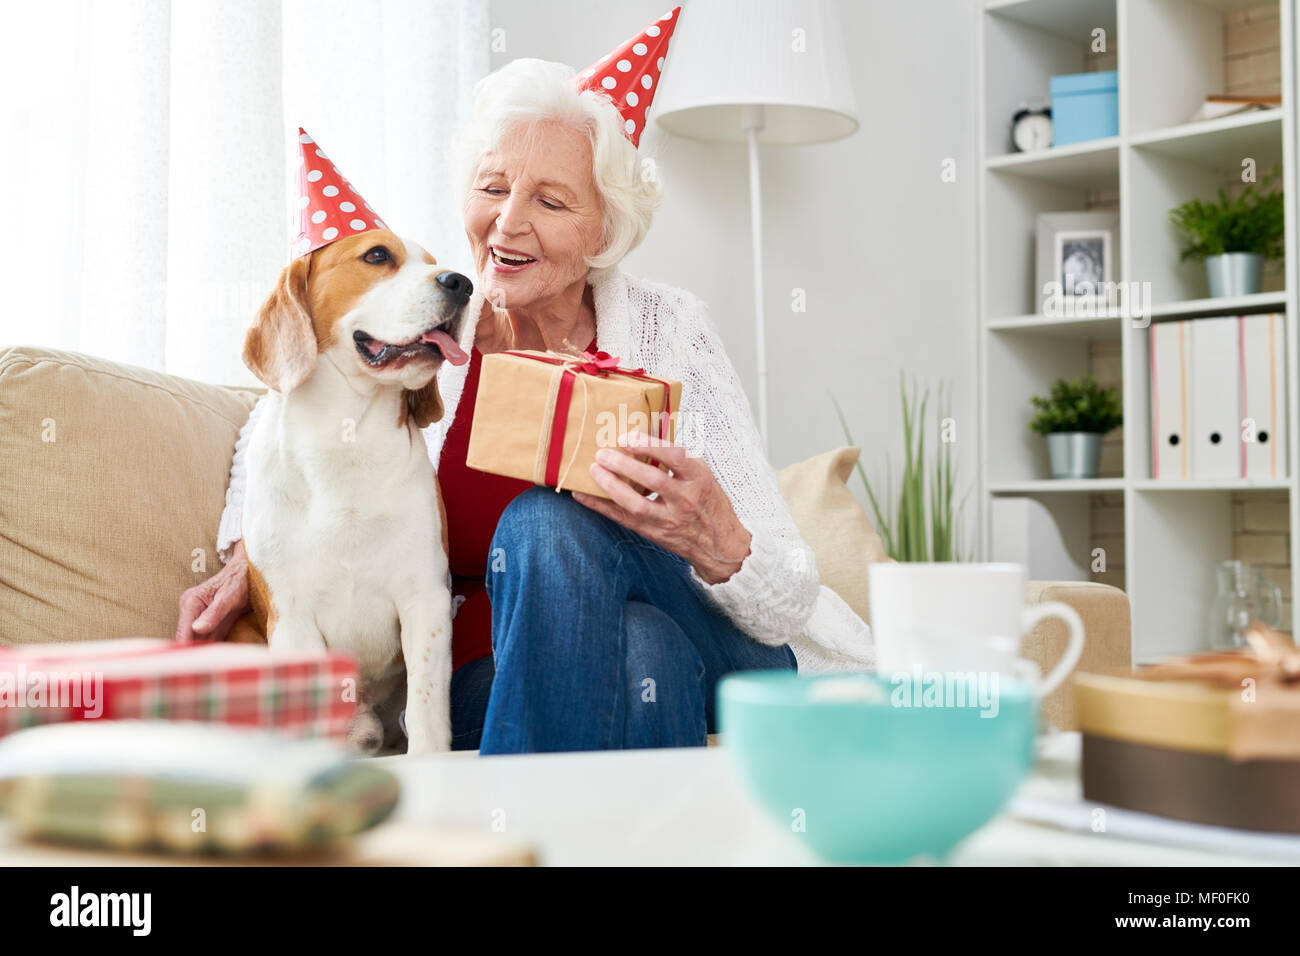 Cheerful senior woman congratulating dog with birthday - Stock Image